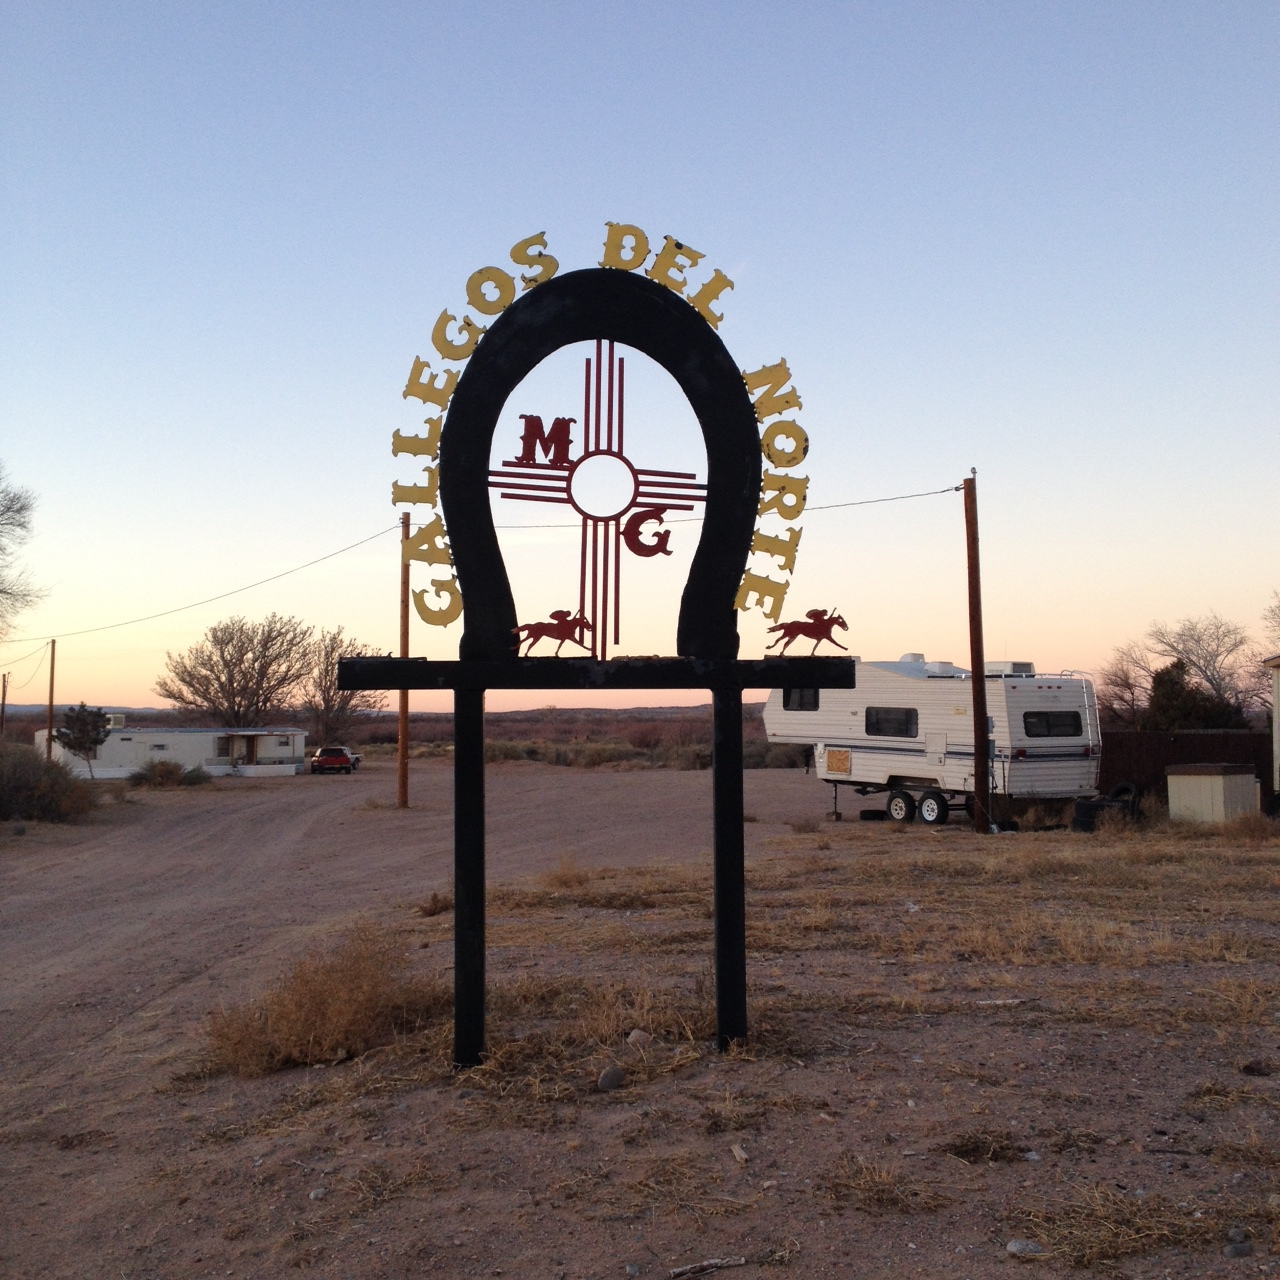 A neighboring ranch. I love the sign with the Zia symbol and horses.